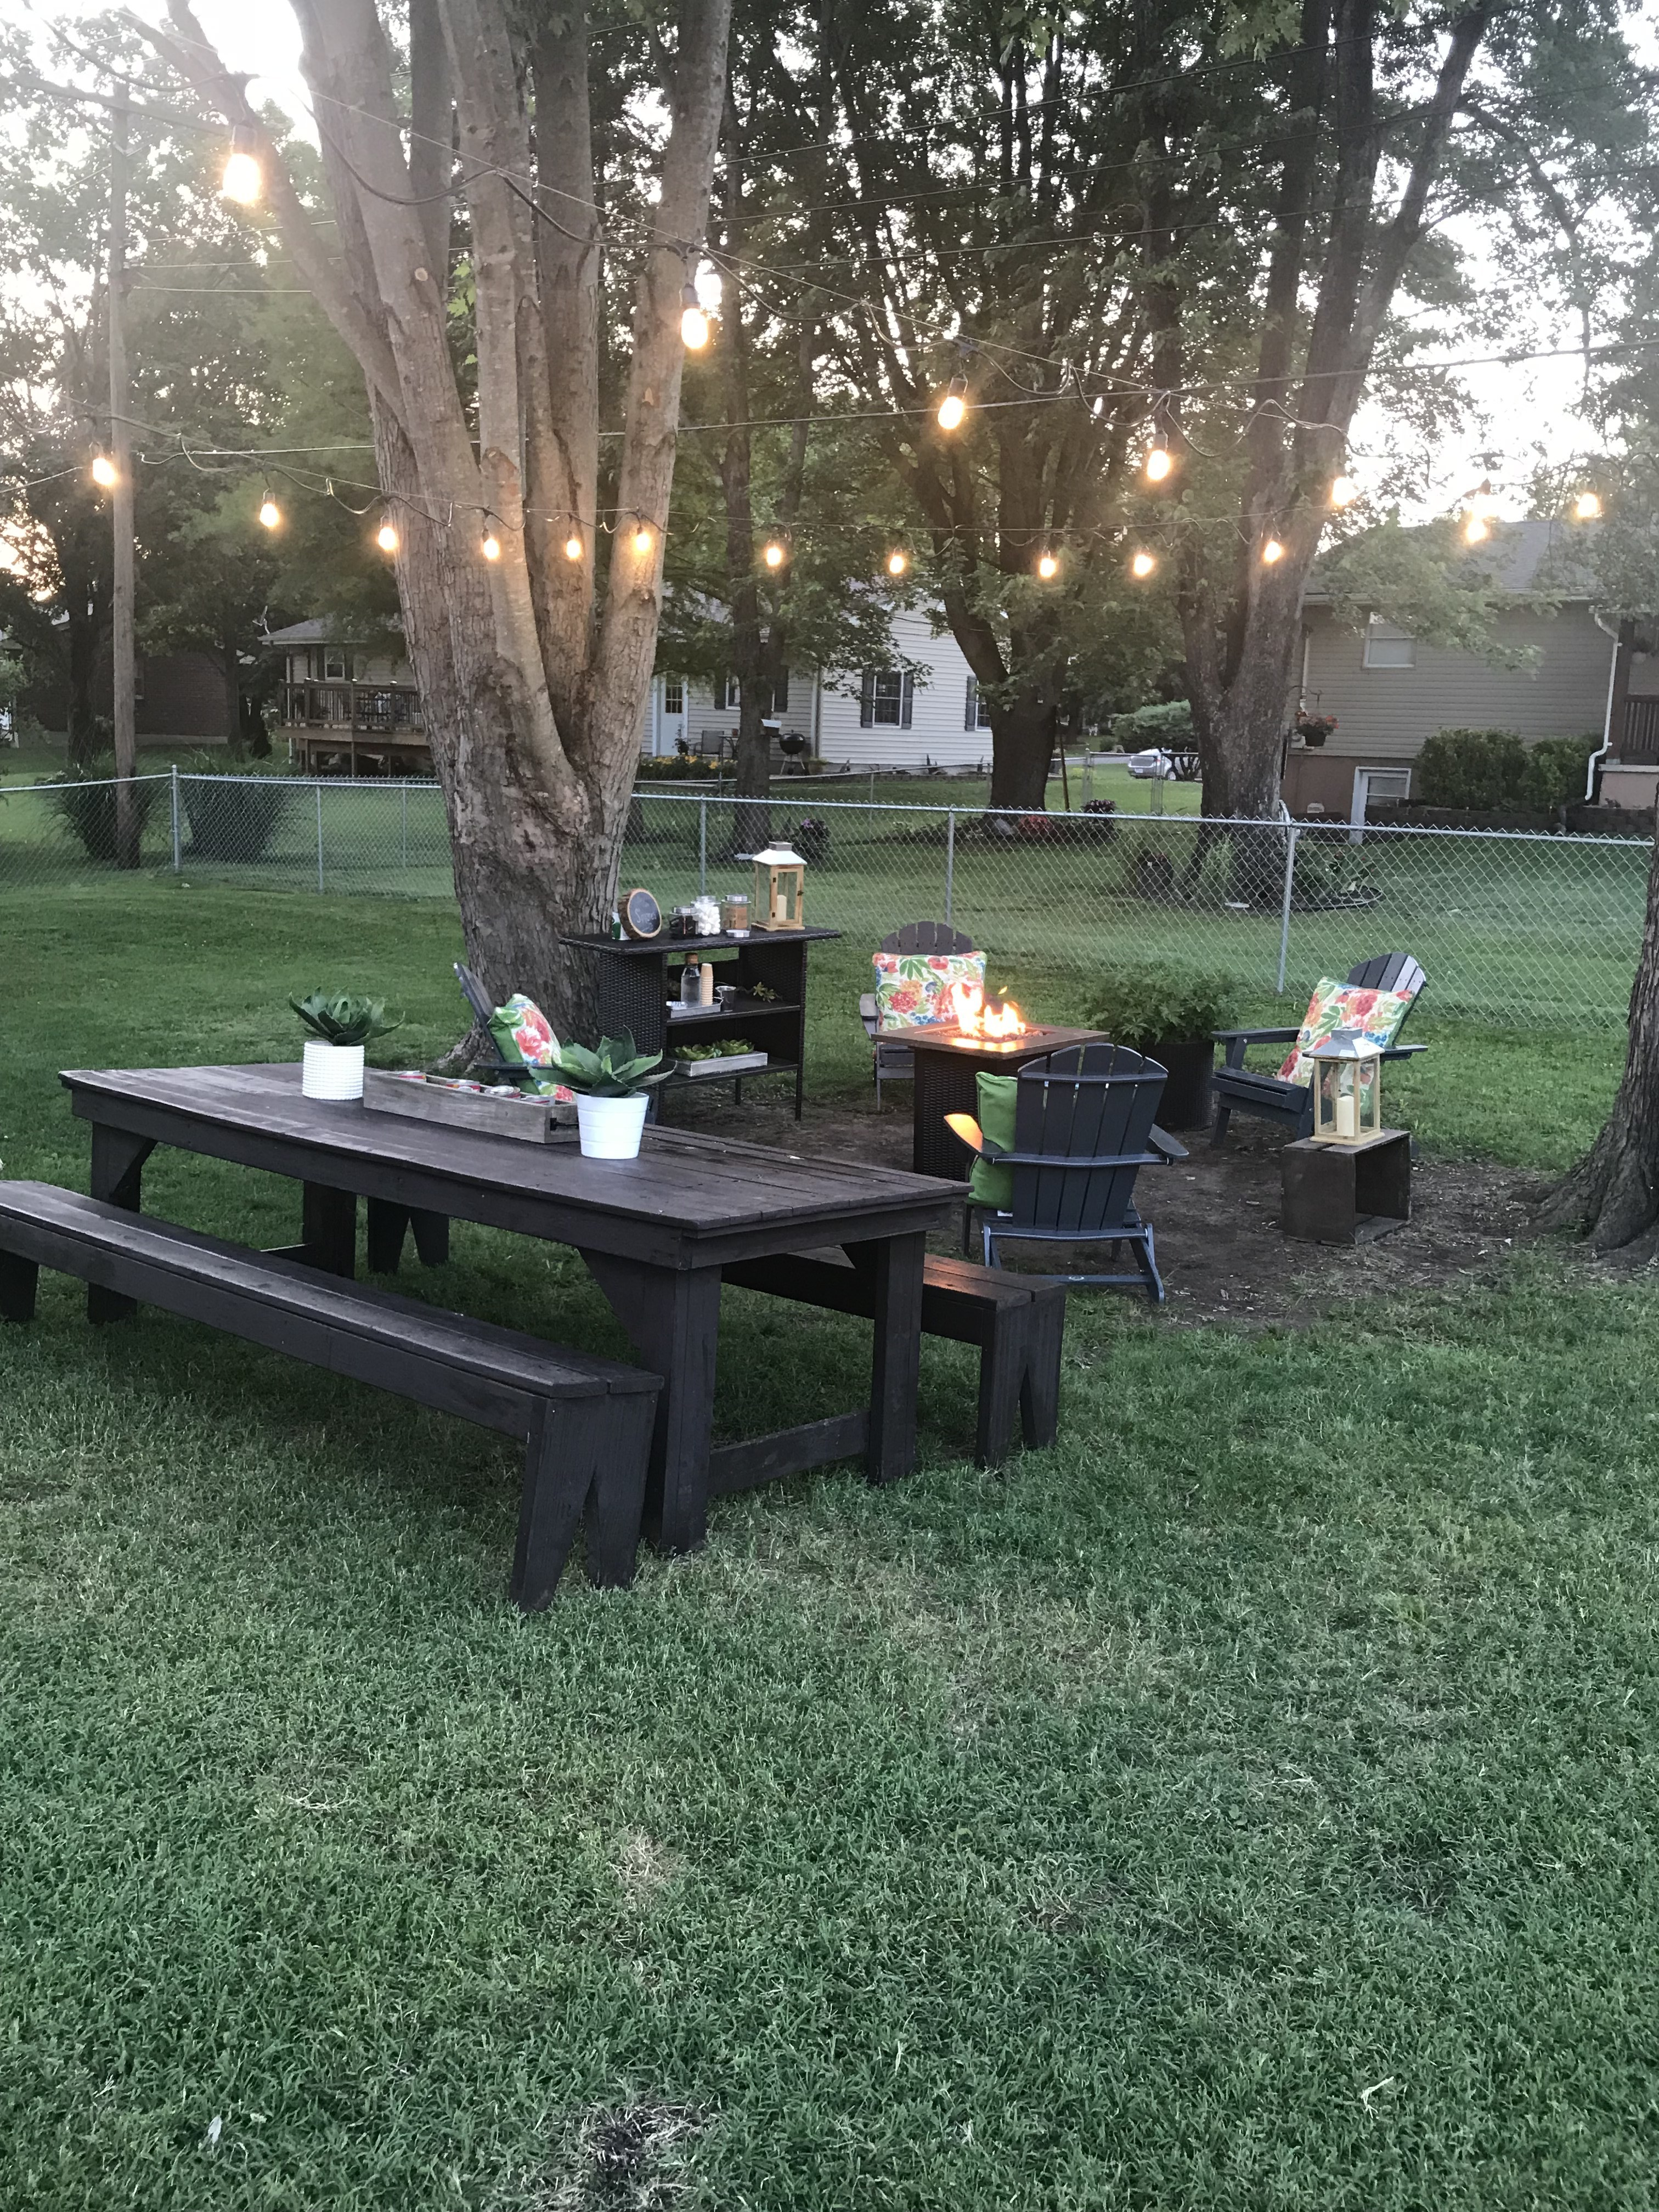 How to hang outdoor string lights. Backyard DIY ideas.